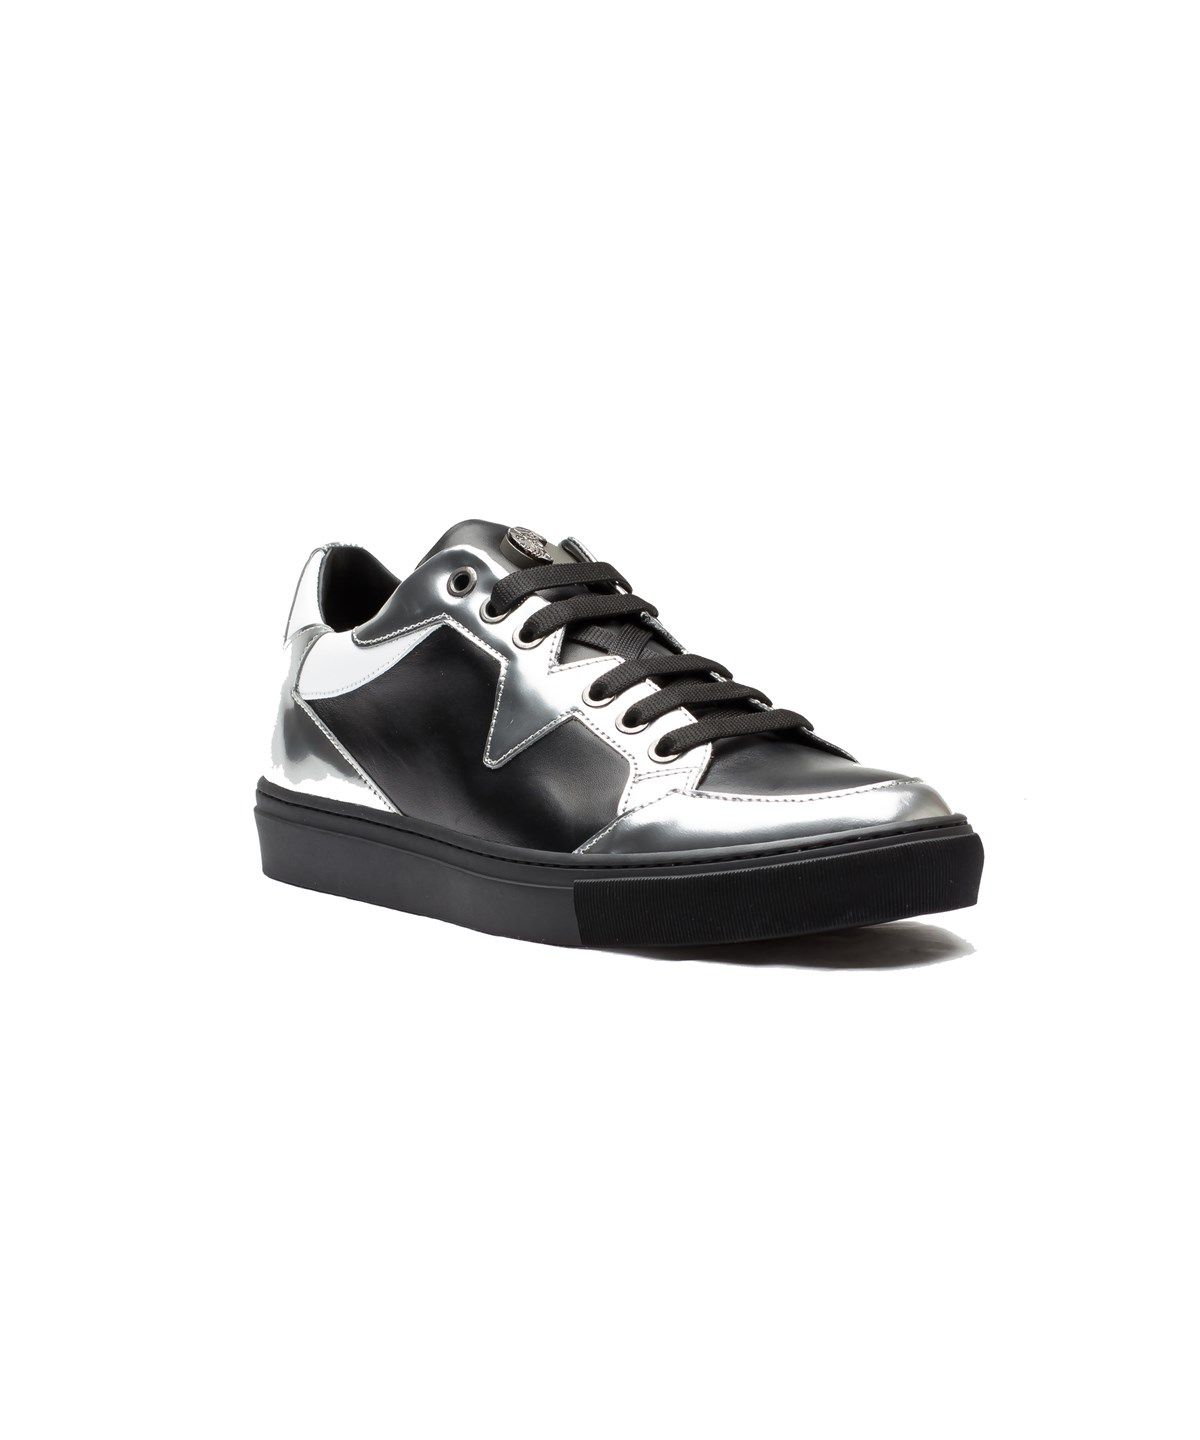 VERSACE VERSACE COLLECTION MEN'S LEATHER MEDUSA LOW TOP SNEAKER SHOES BLACK  SILVER WHITE'. #